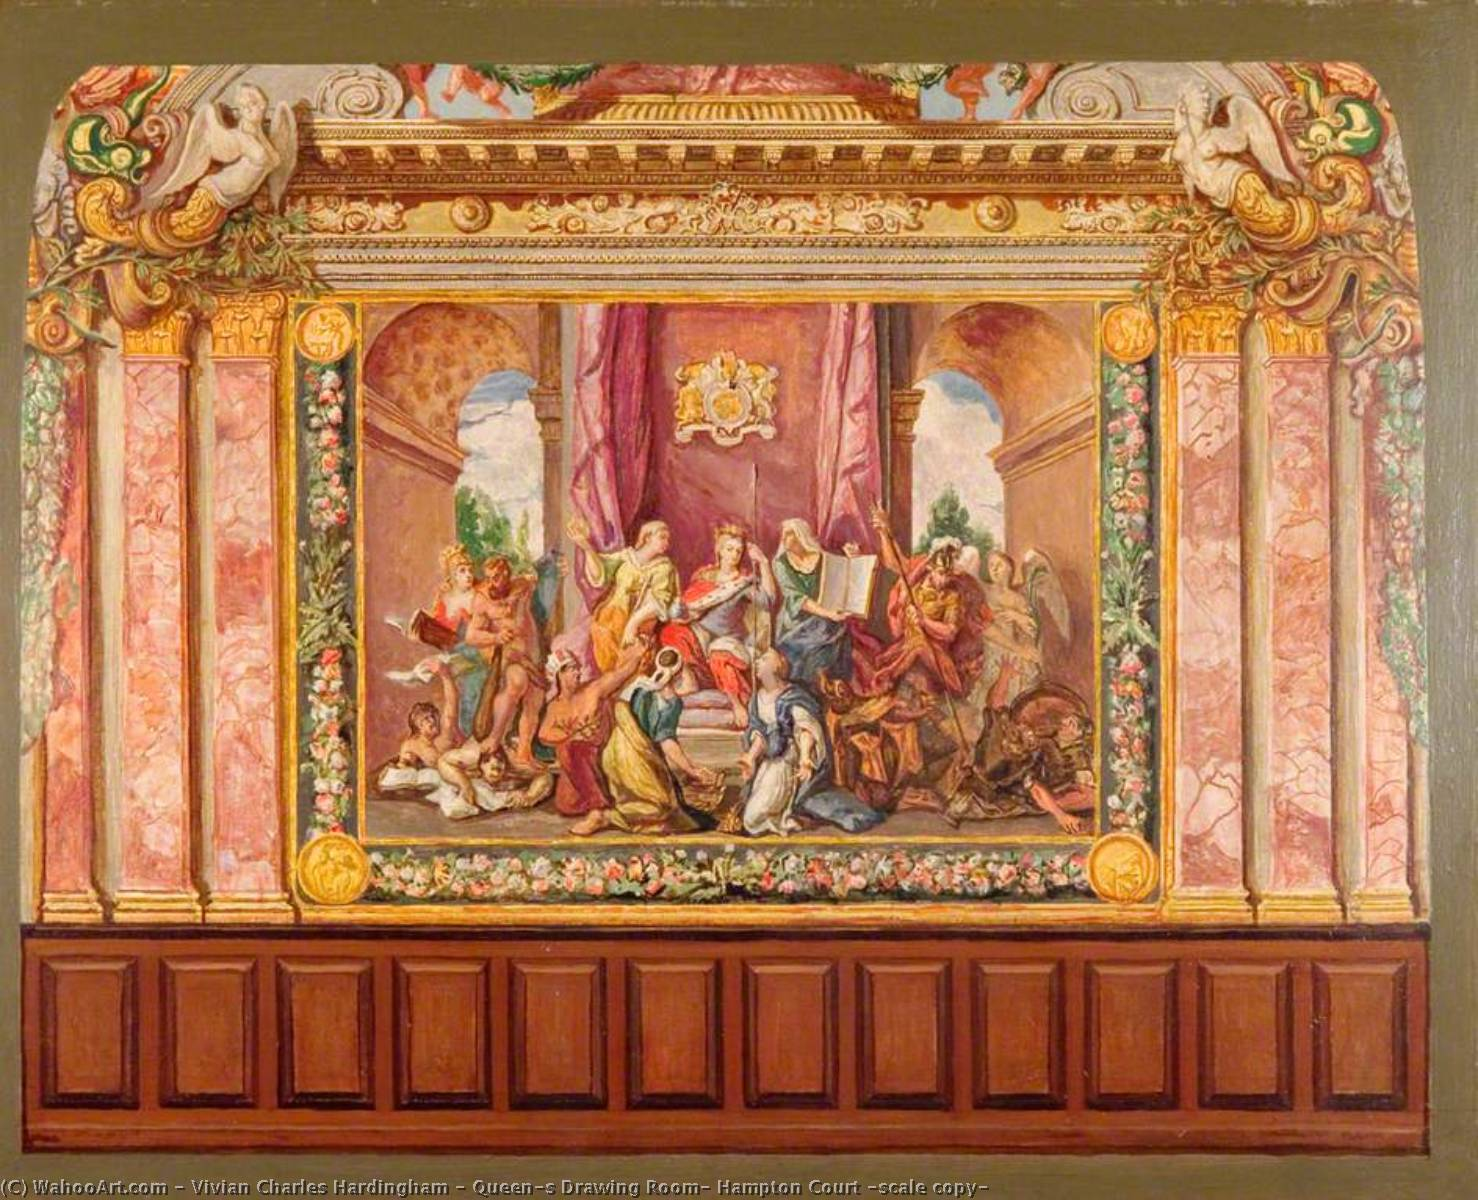 Queen`s Drawing Room, Hampton Court (scale copy) by Vivian Charles Hardingham | Oil Painting | WahooArt.com